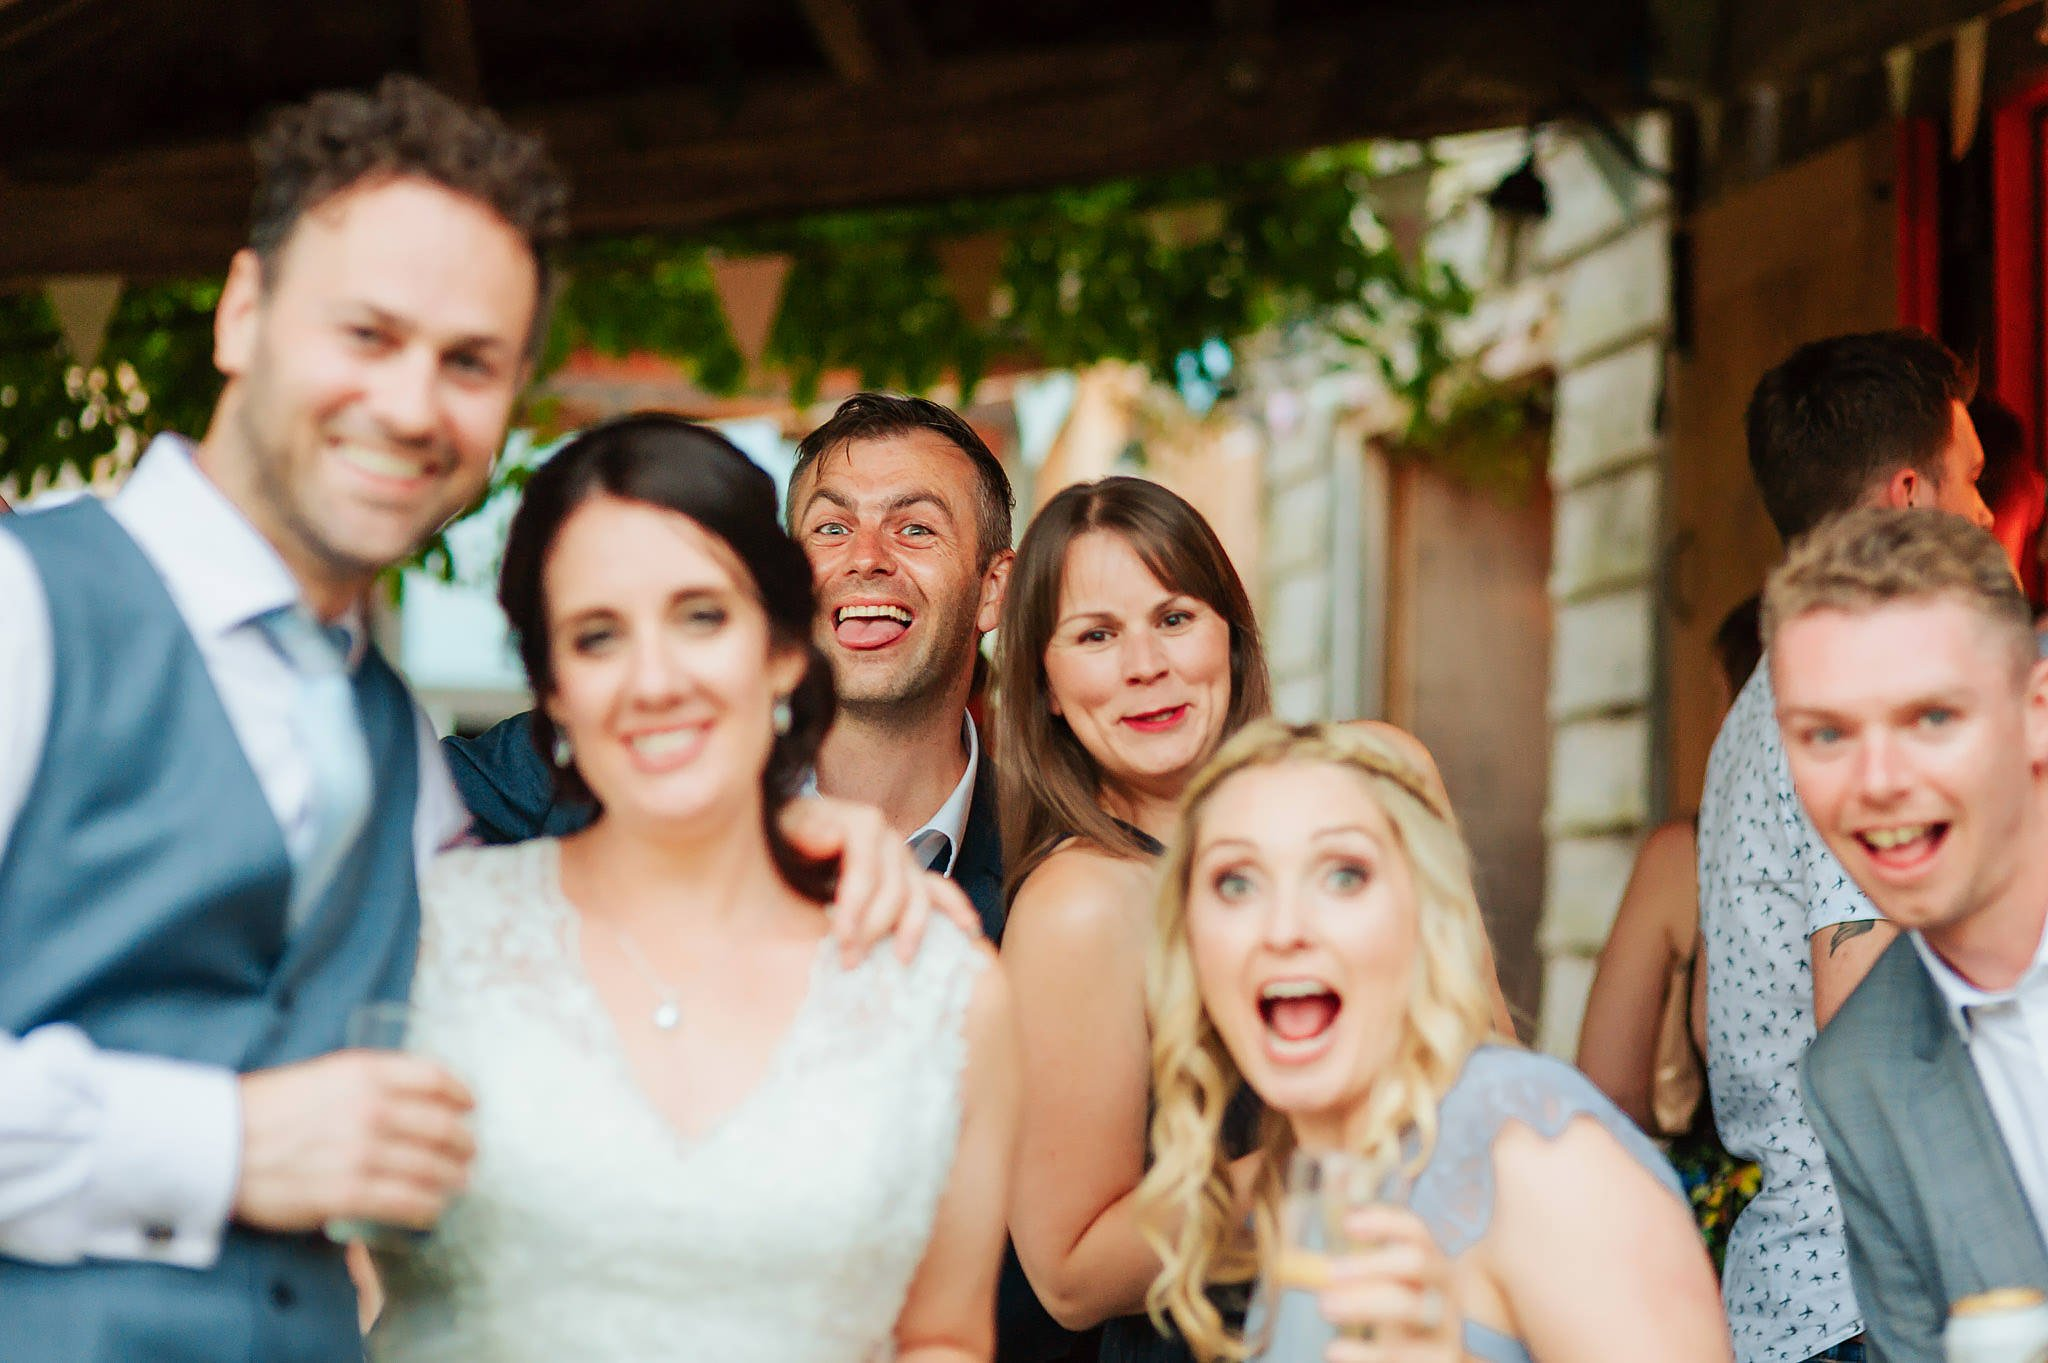 Wedding photography at Hellens Manor in Herefordshire, West Midlands | Shelley + Ian 141